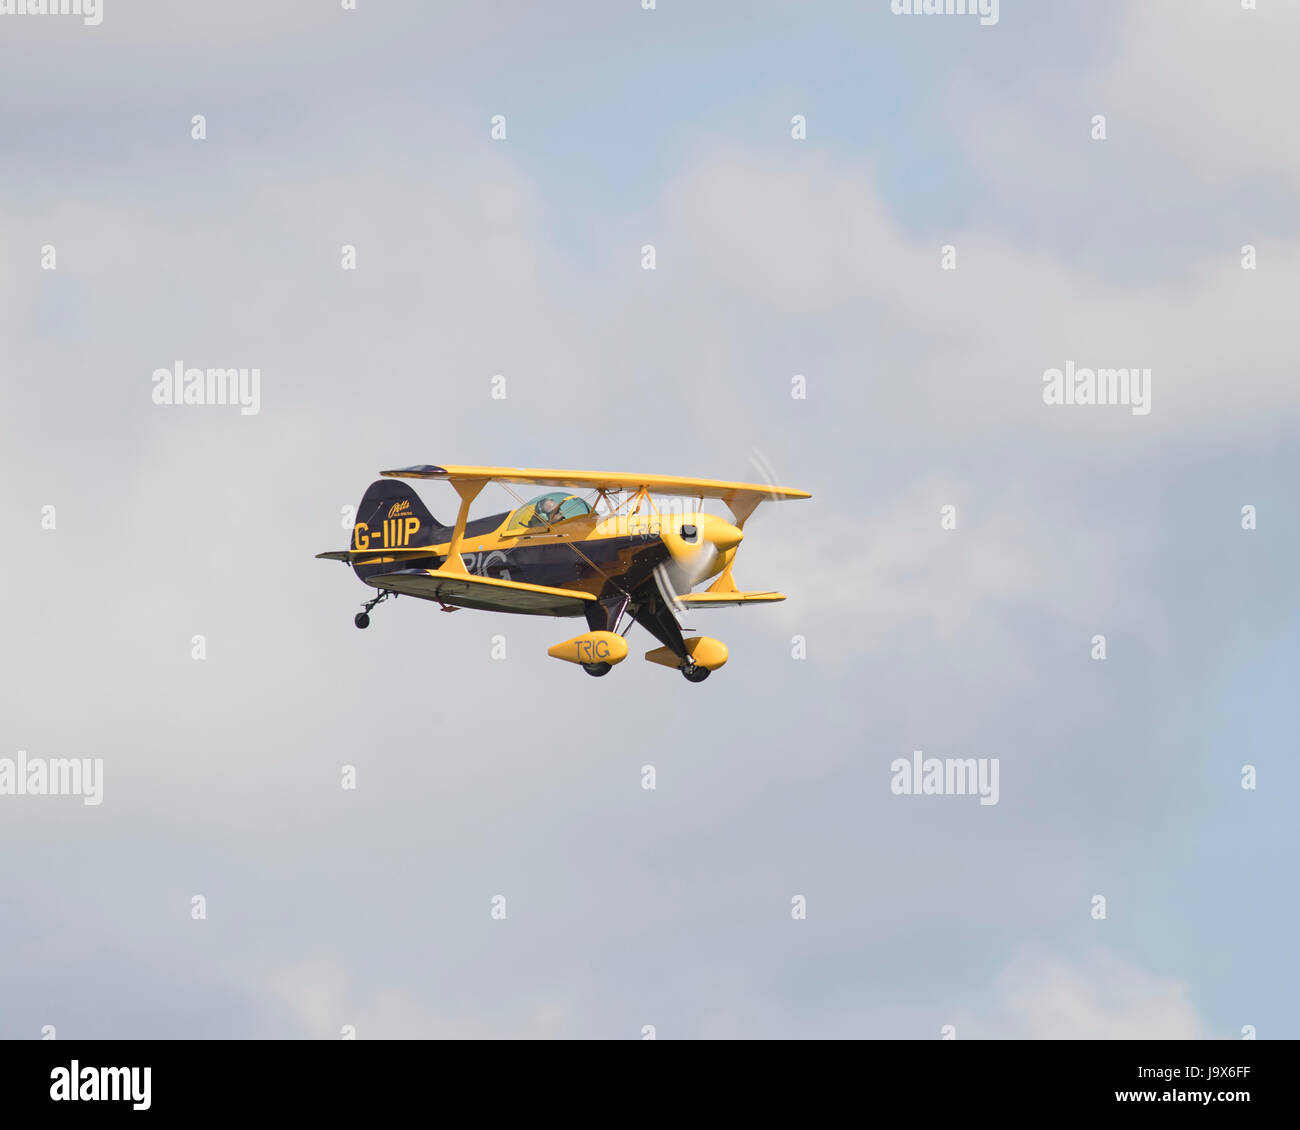 de Havilland DH.90 Dragonfly 1930s biplane flying - Stock Image